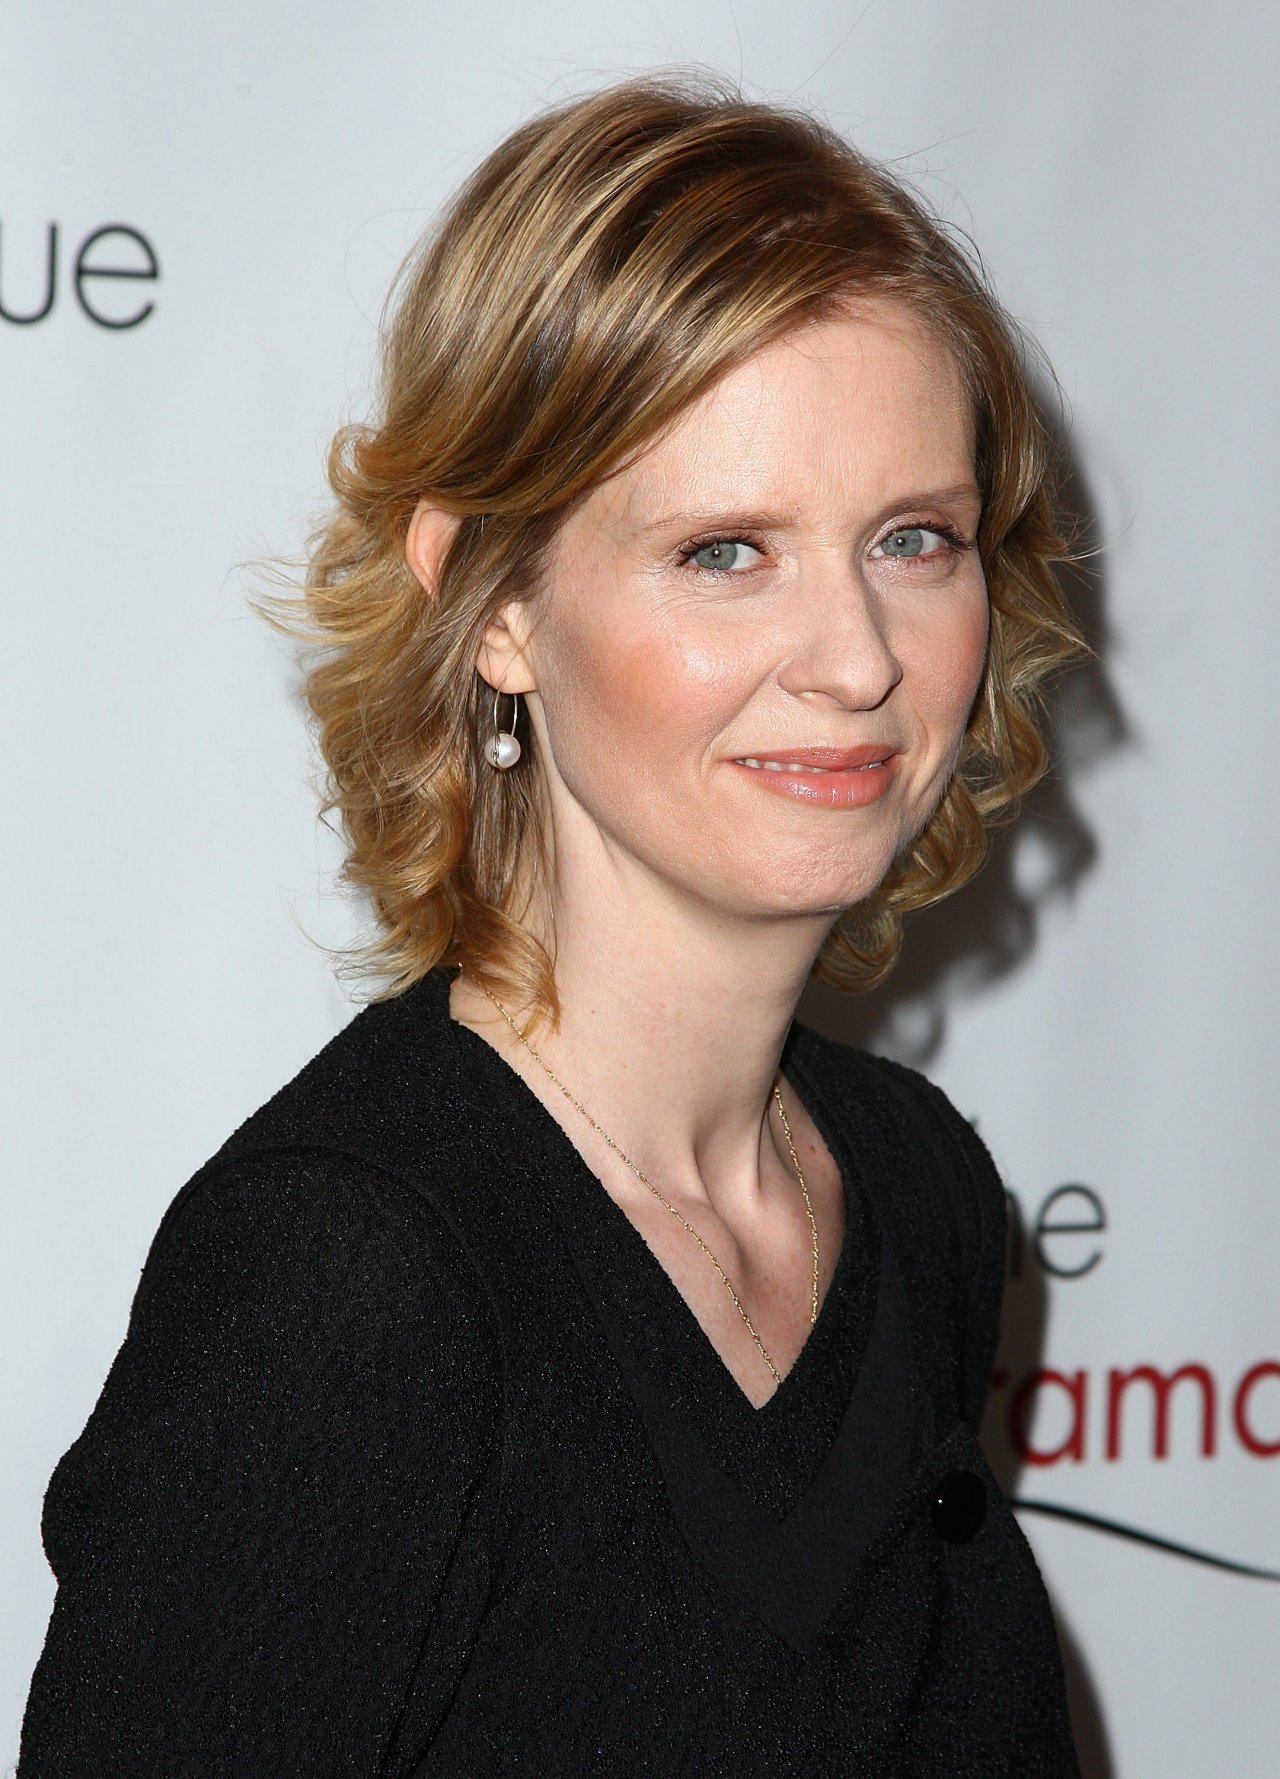 cynthia nixon wallpaper - photo #2